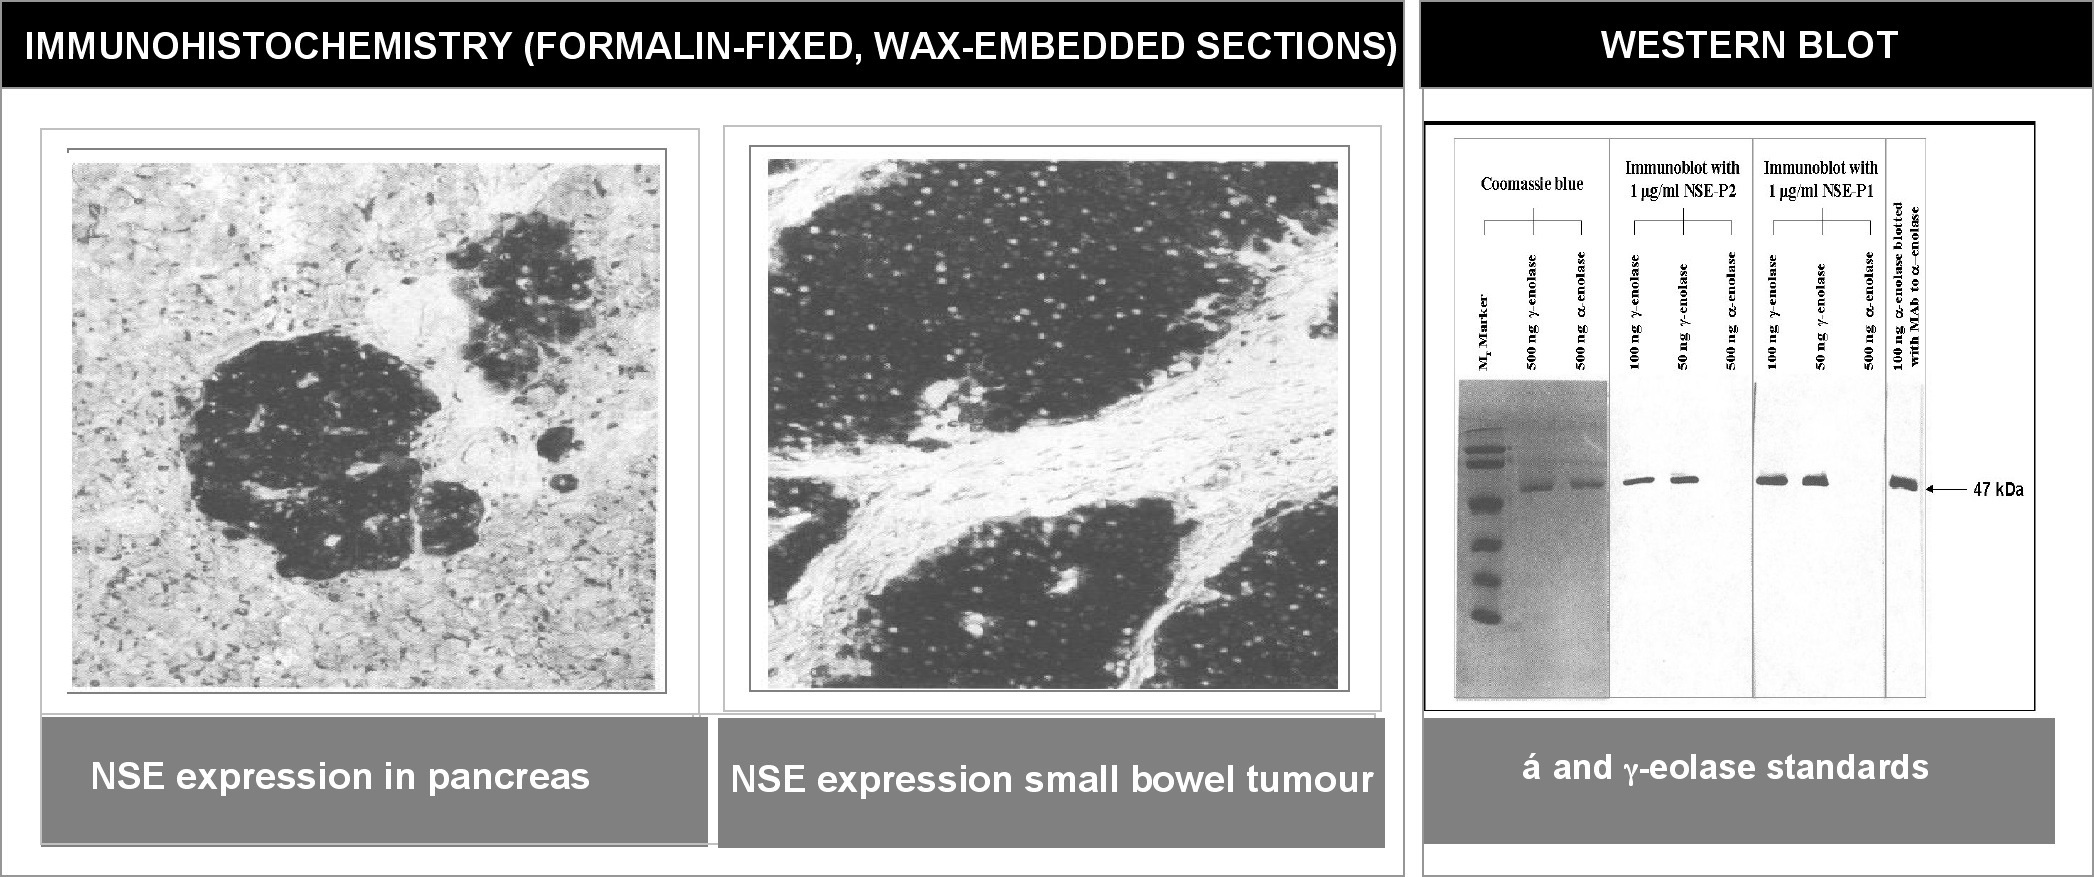 """Left and Center: Immunohistochemical staining of normal pancreas tissue (left) and small bowel tumor tissue (center) using NSE antibody (X2070M and X2071M). Right: Western blot analysis using NSE antibodies (X2070M and X2071M) on α and γ enolase standards."""